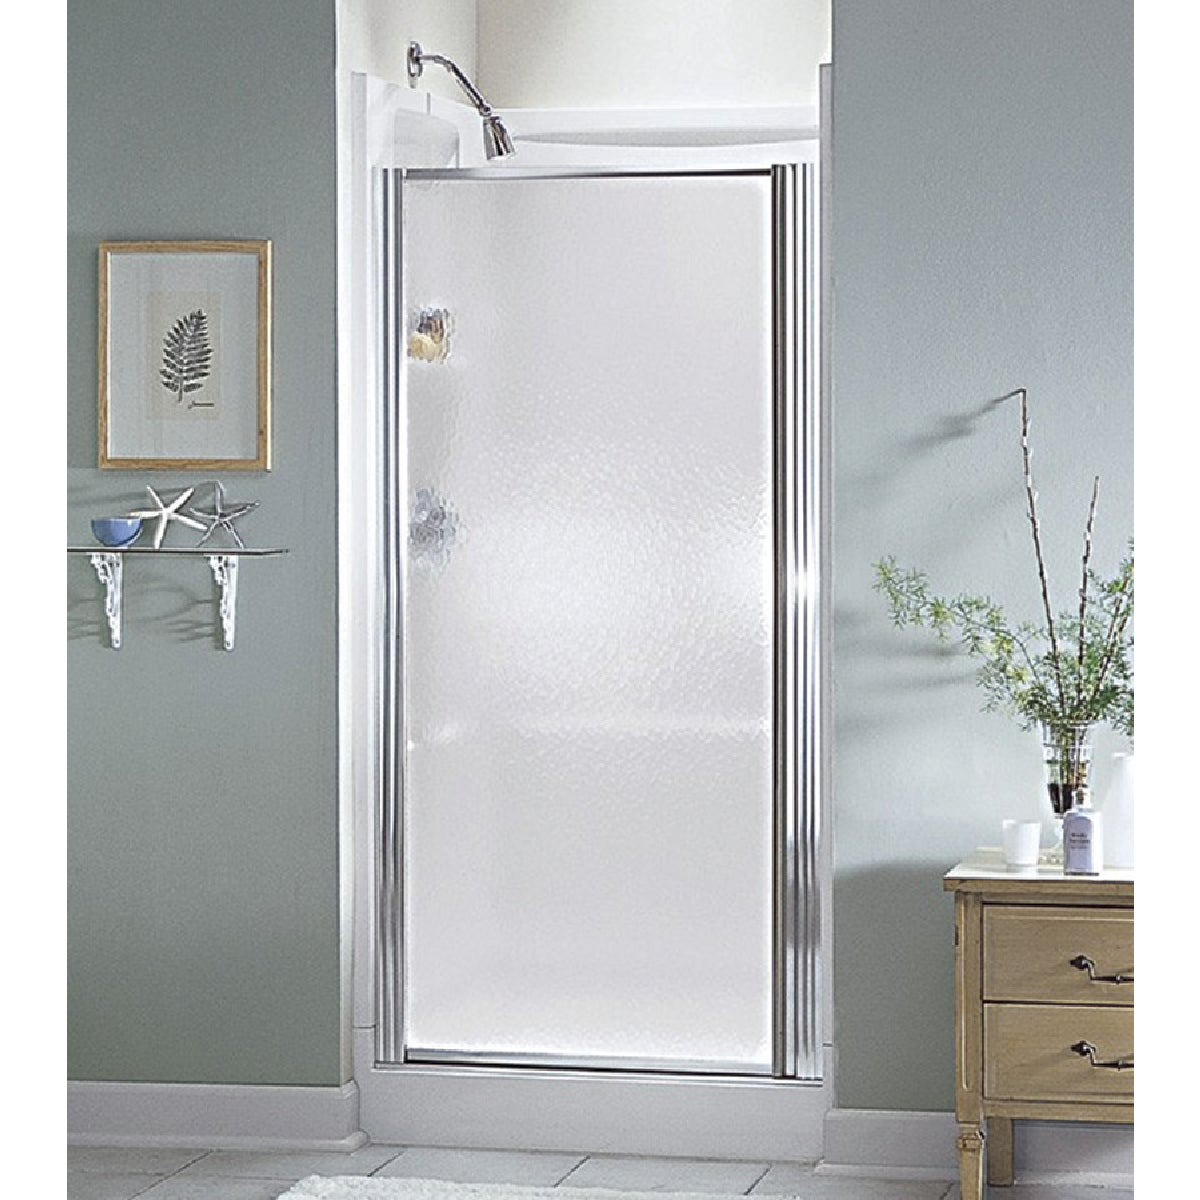 SILVER HINGED SHWR DOOR - 950C-30S by Sterling Doors